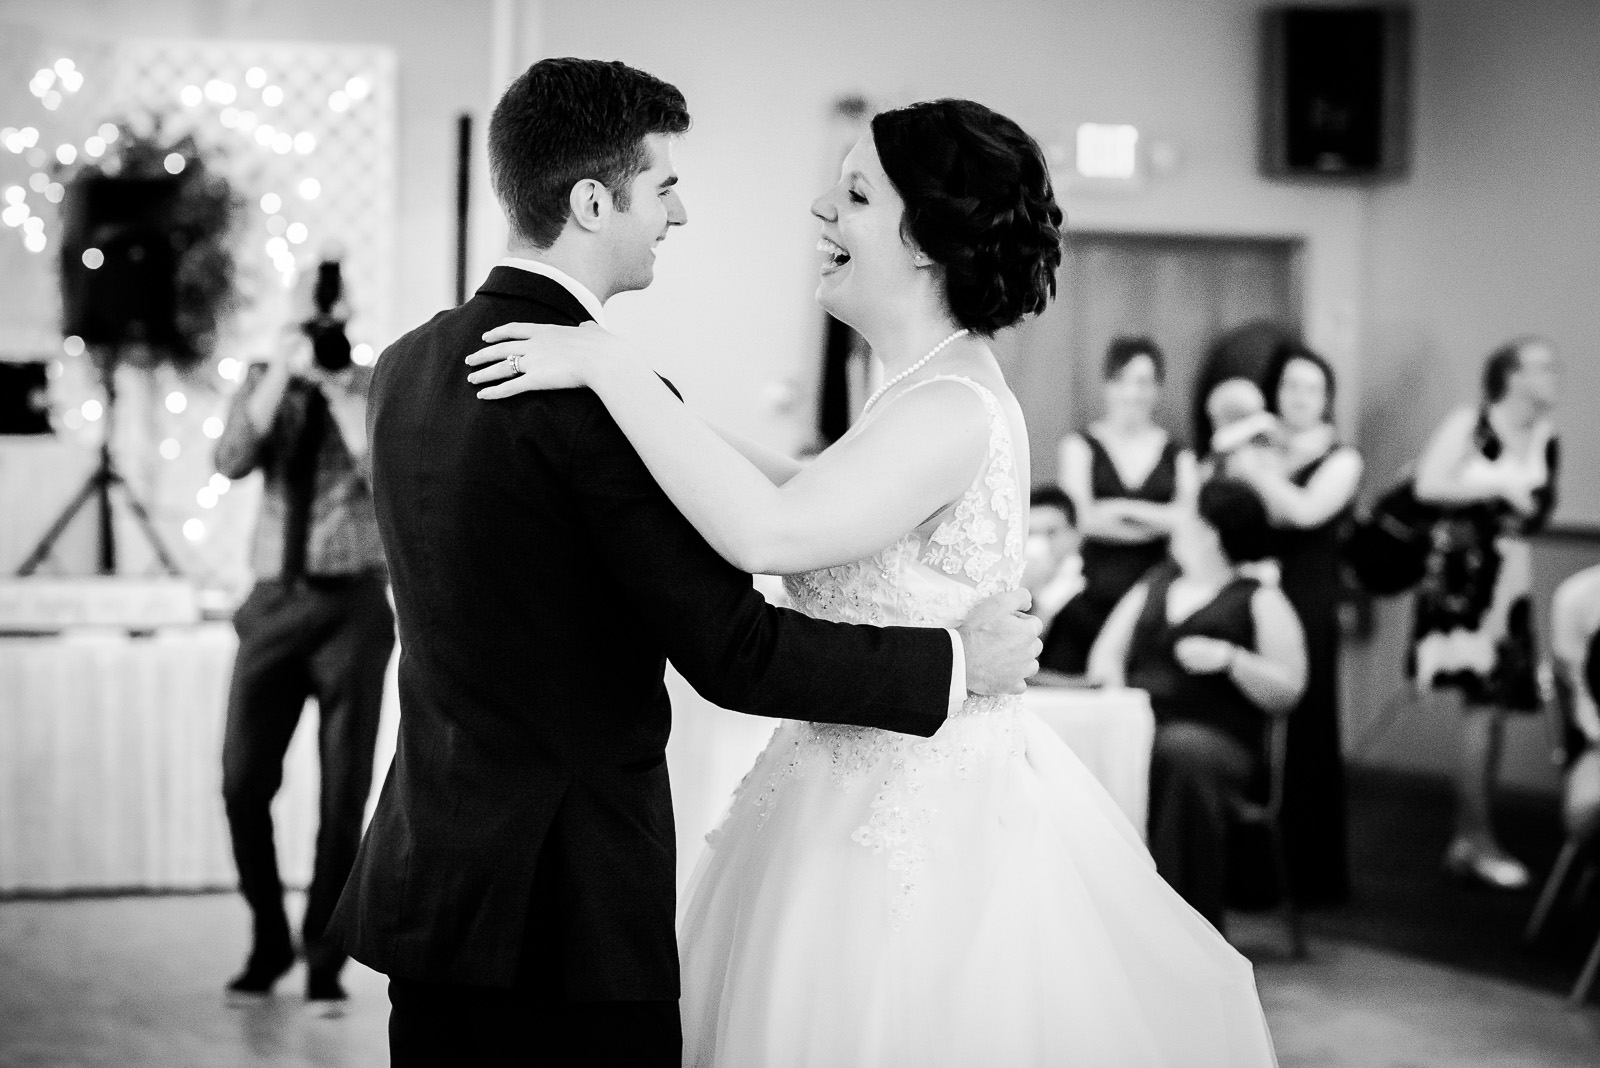 Eric_and_Christy_Photography_Blog_Wedding_Kelly_Michael-50